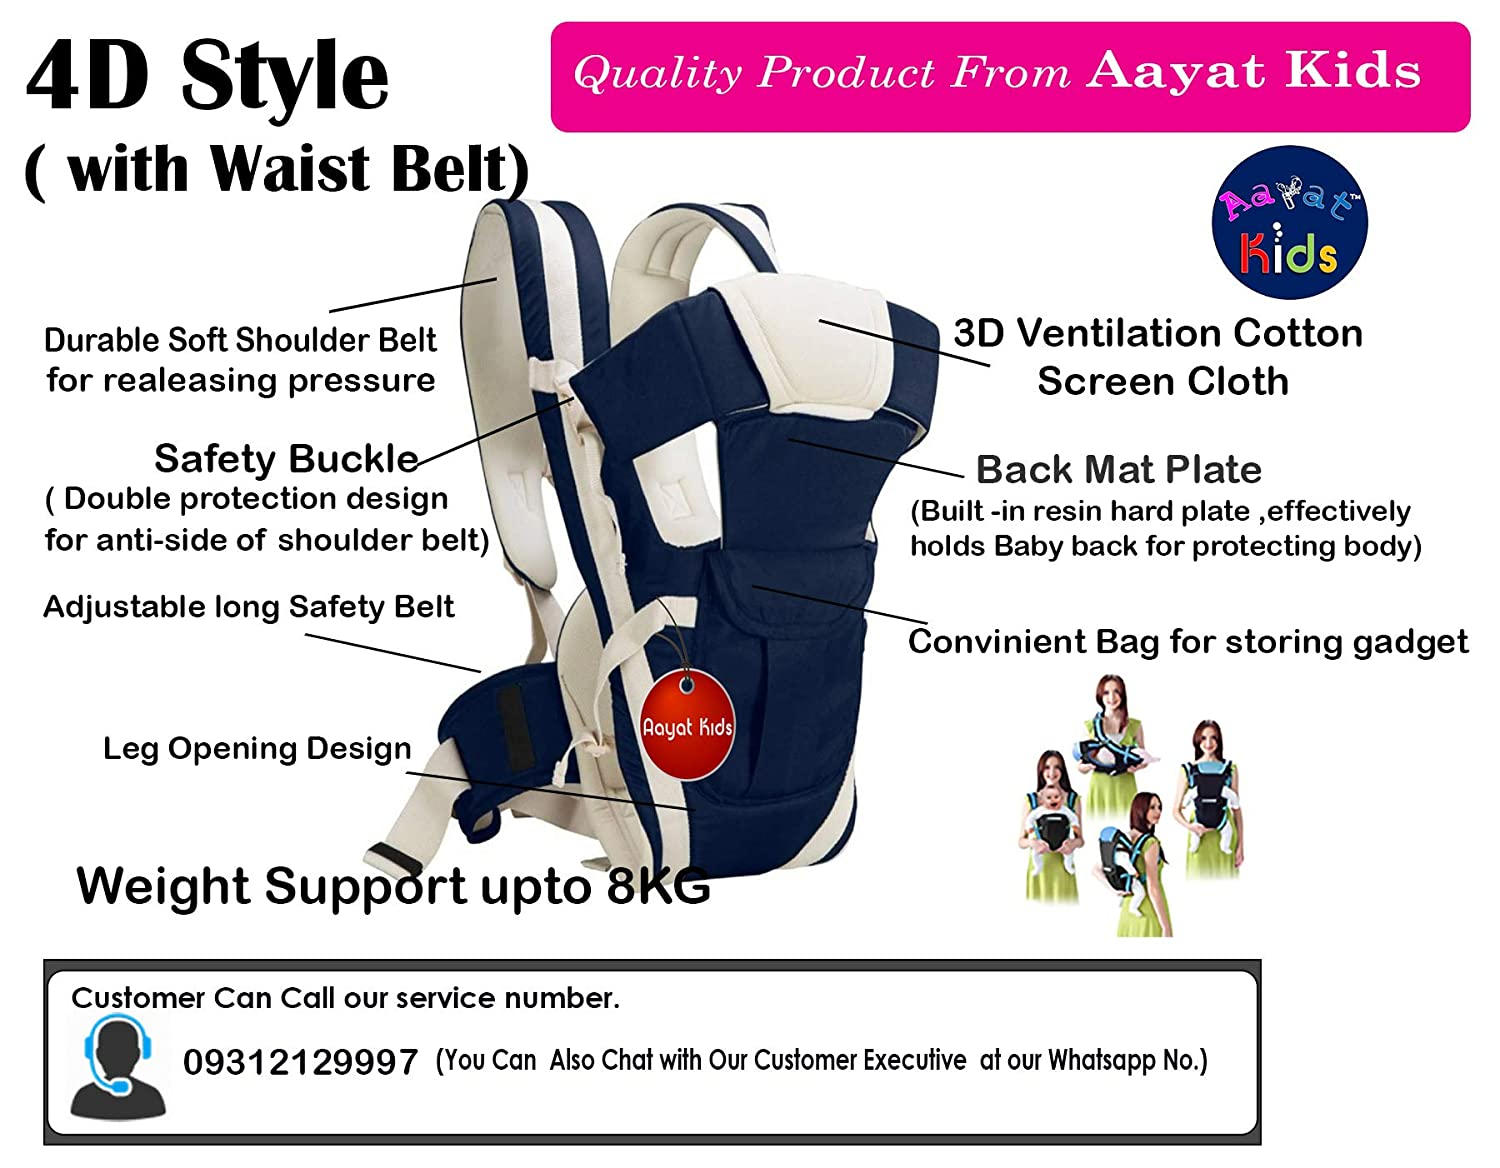 3c9d4f78e29 Buy Aayat Kids ® Prime Sporty Luxury Head Supported Multi Use with Solid  Waist Belt X10 Online at Low Prices in India - Amazon.in